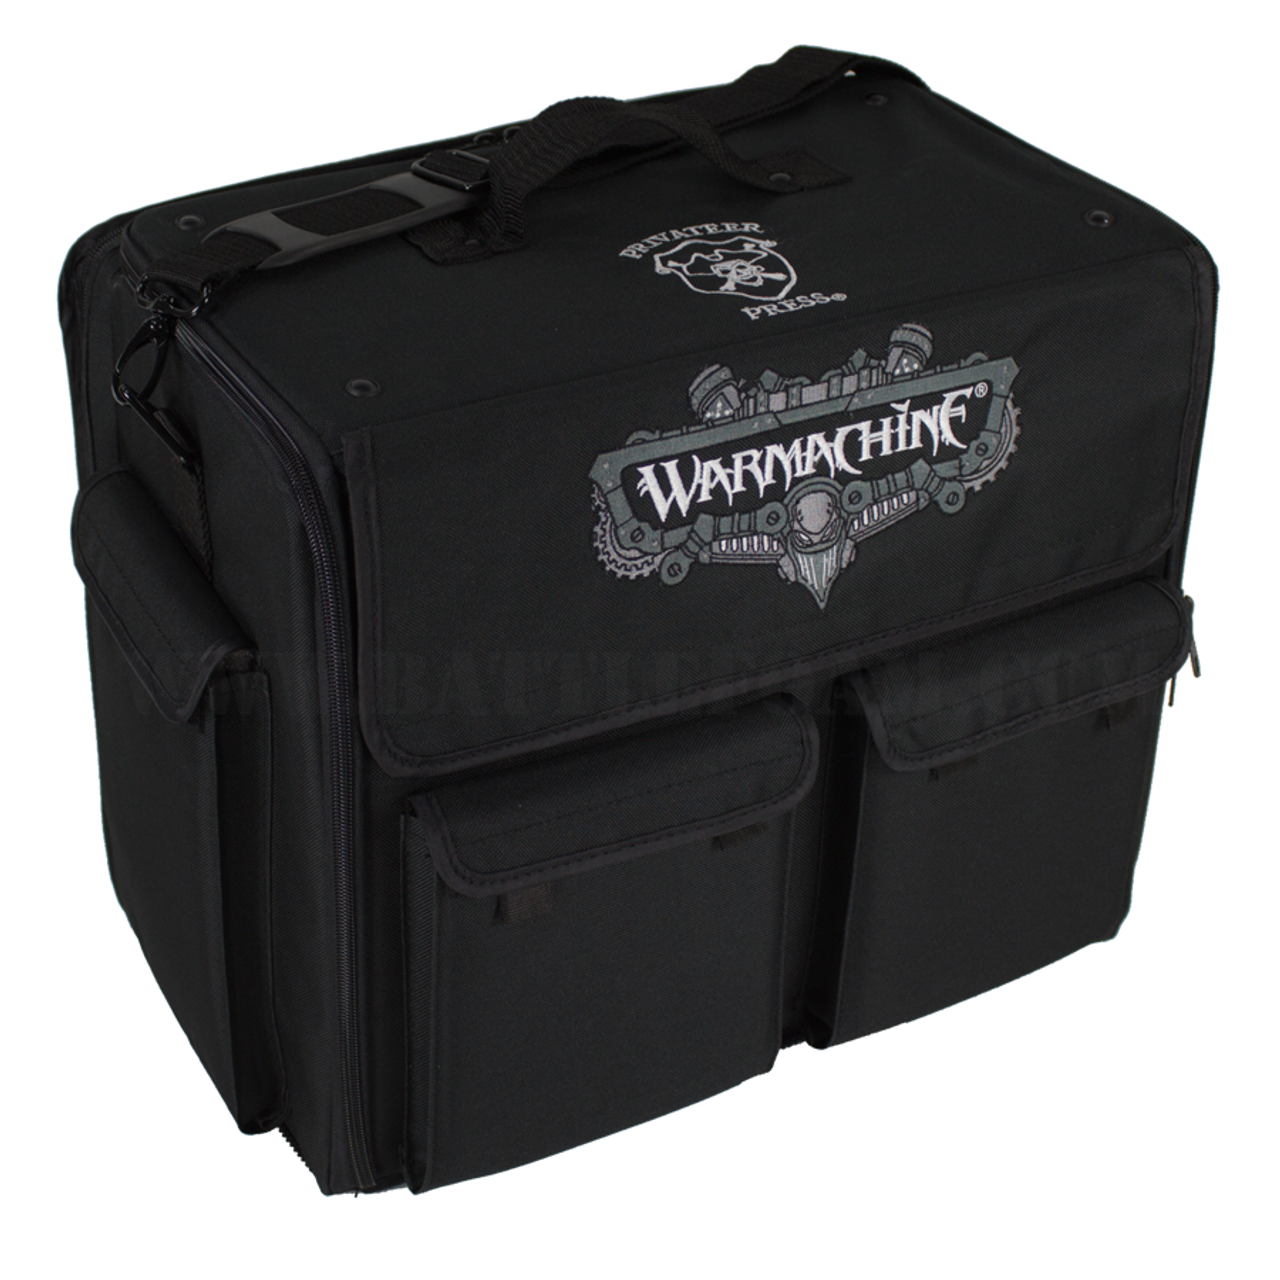 Warmachine Bag